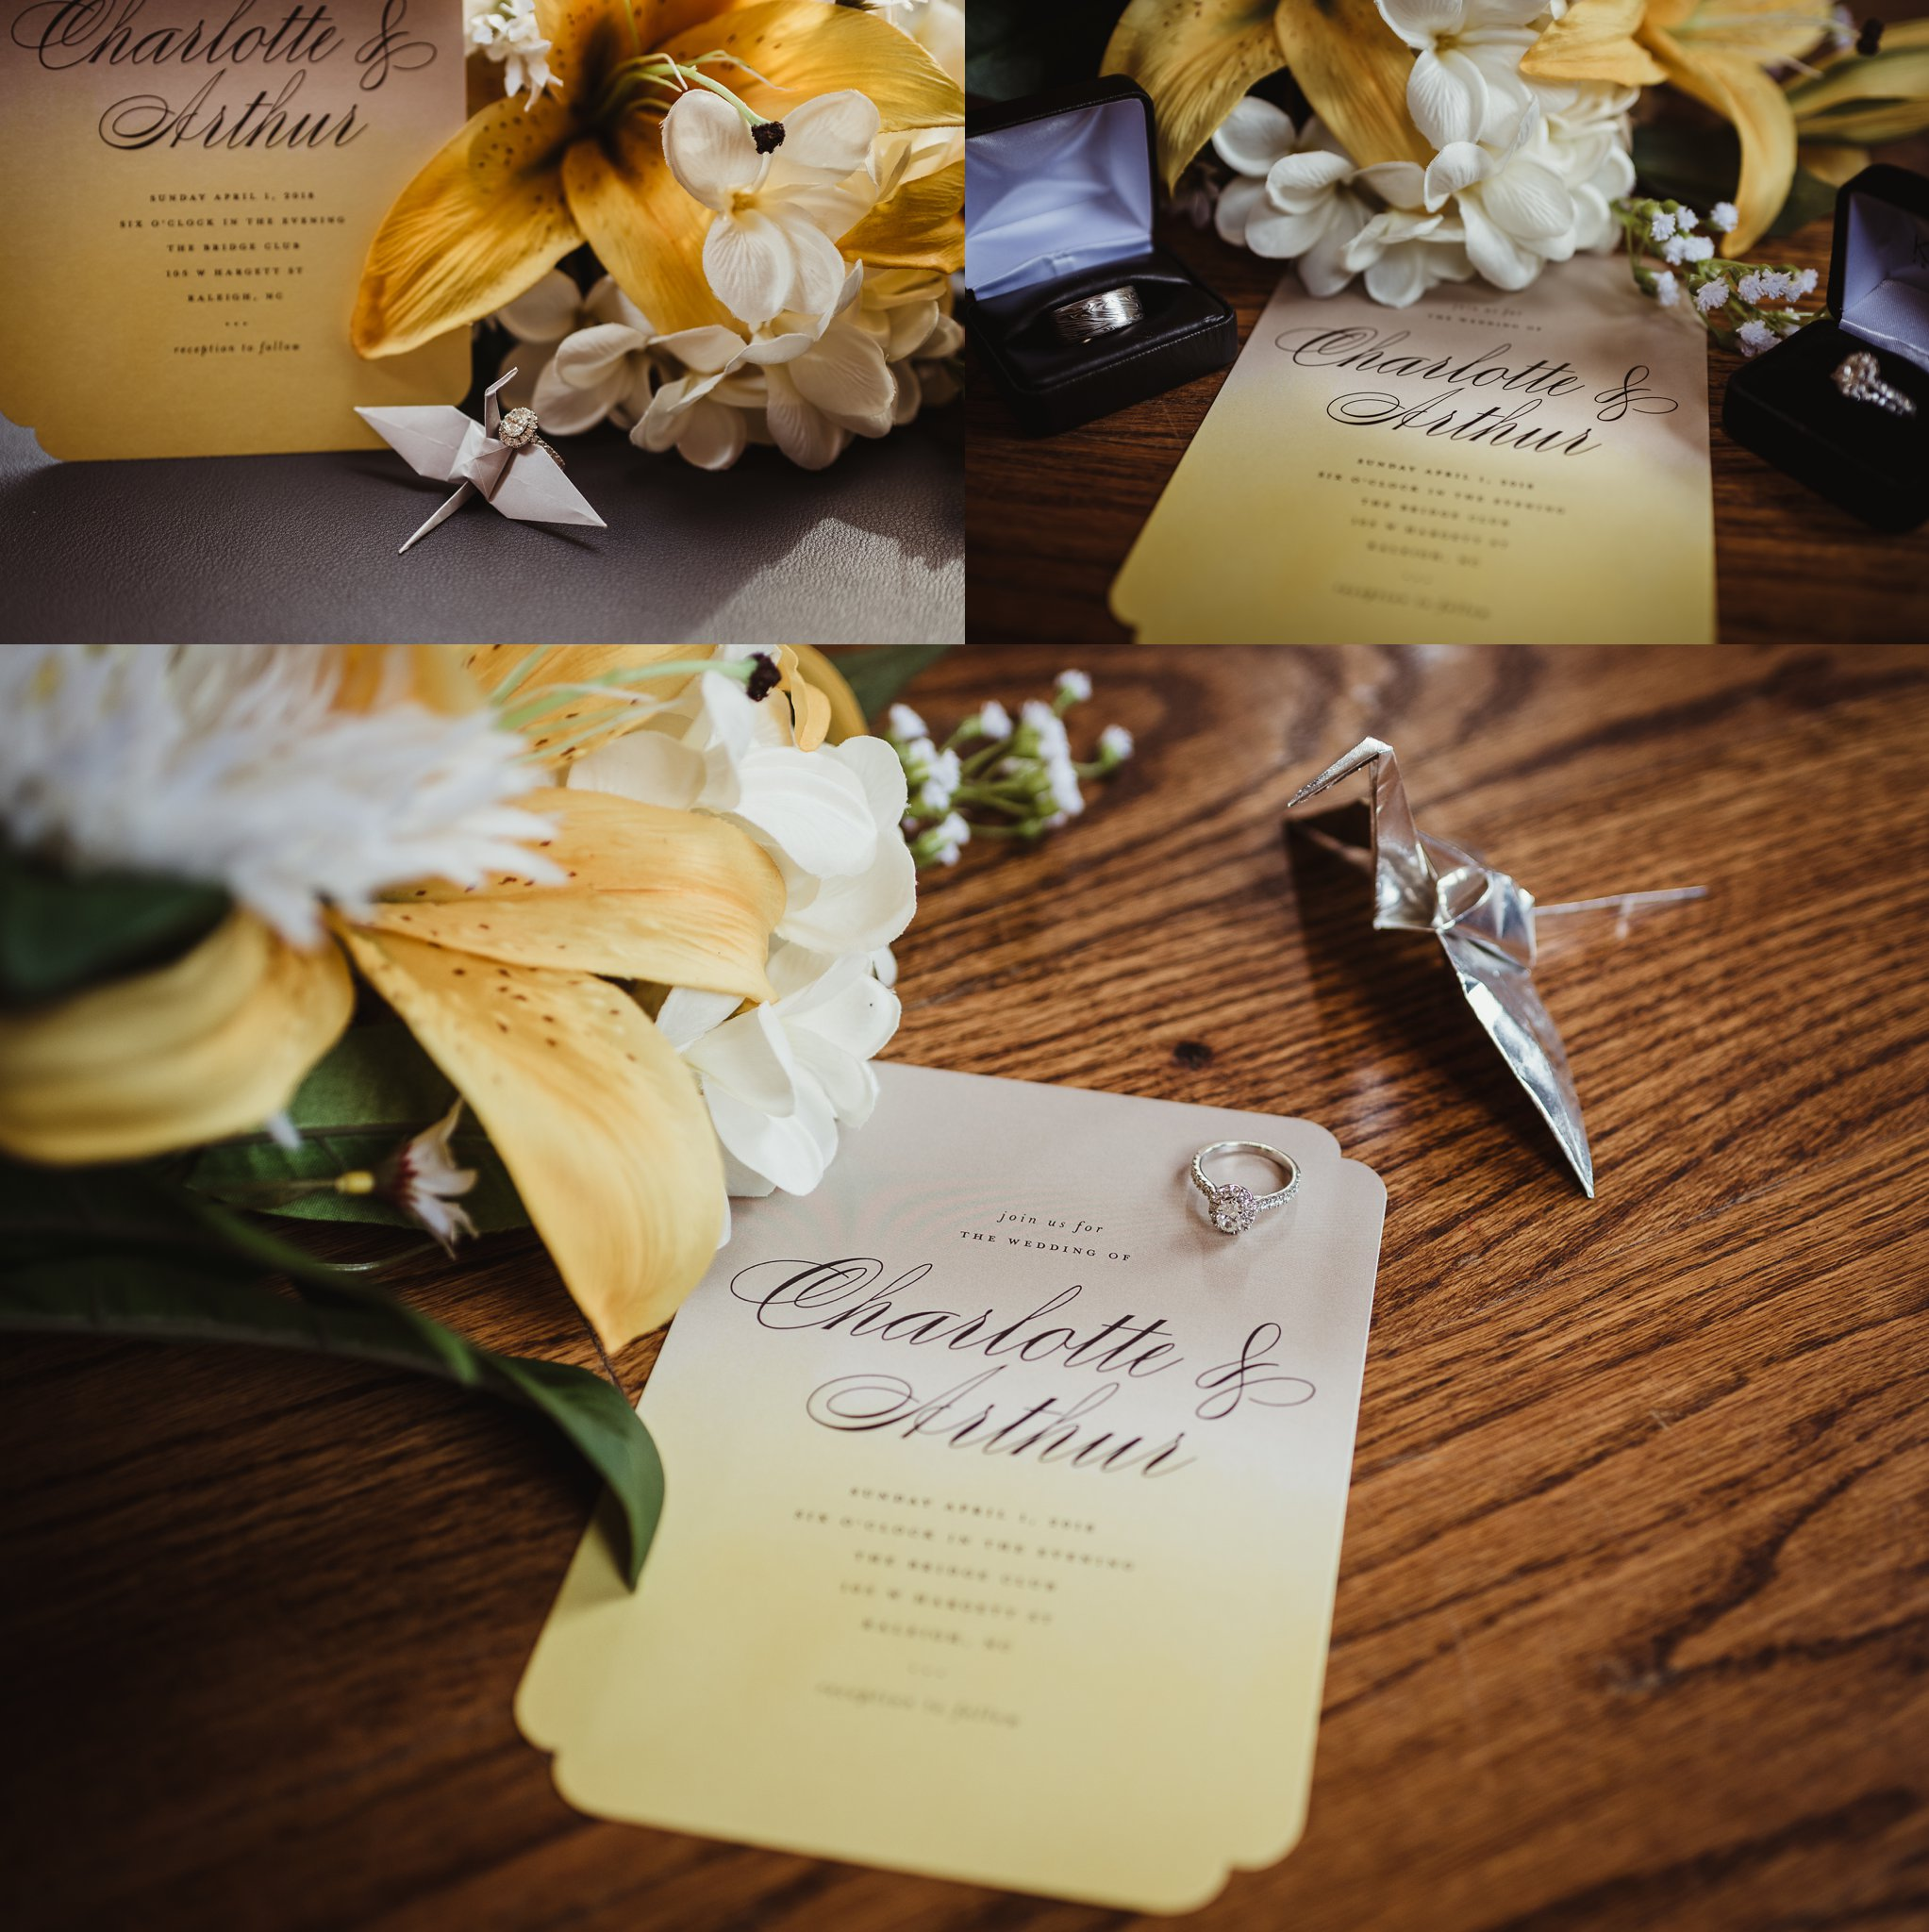 Wedding details such as the yellow and gray invitation, yellow flowers, silver cranes, and the wedding rings are important to capture during the wedding day, pictures by Rose Trail Images in Raleigh, NC.